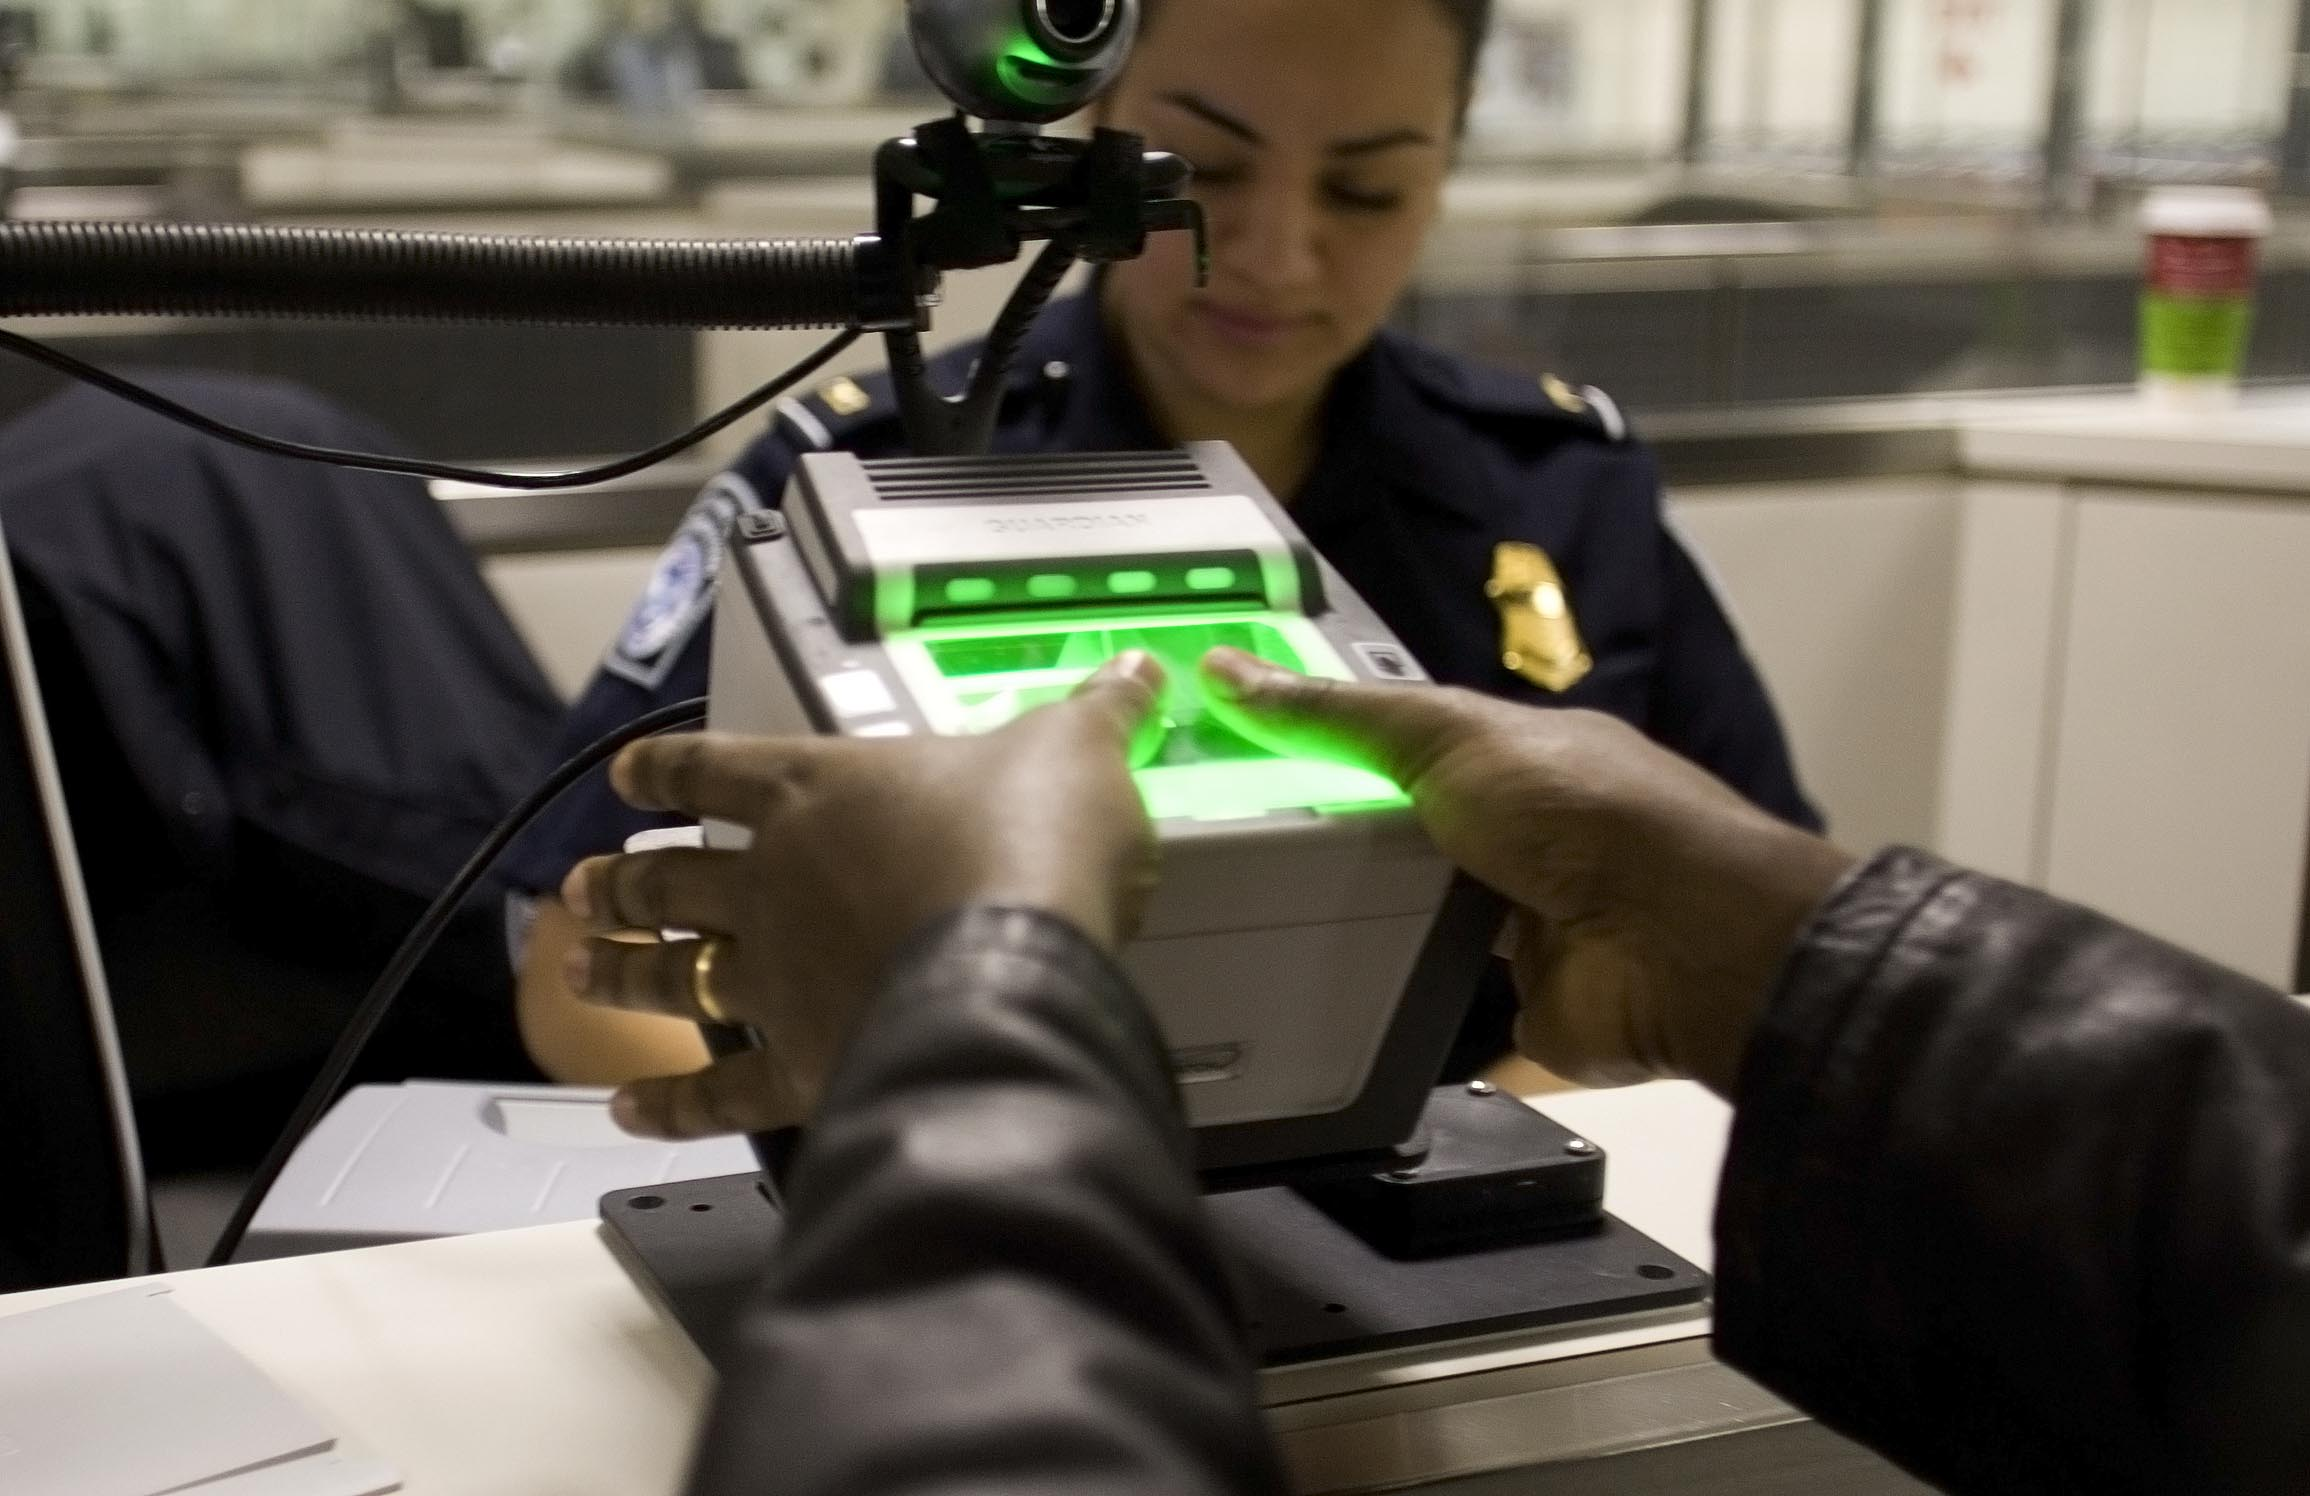 A traveler arriving at Washington Dulles International Airport Monday uses the new US-VISIT mechanism that records all 10 fingerprint images.